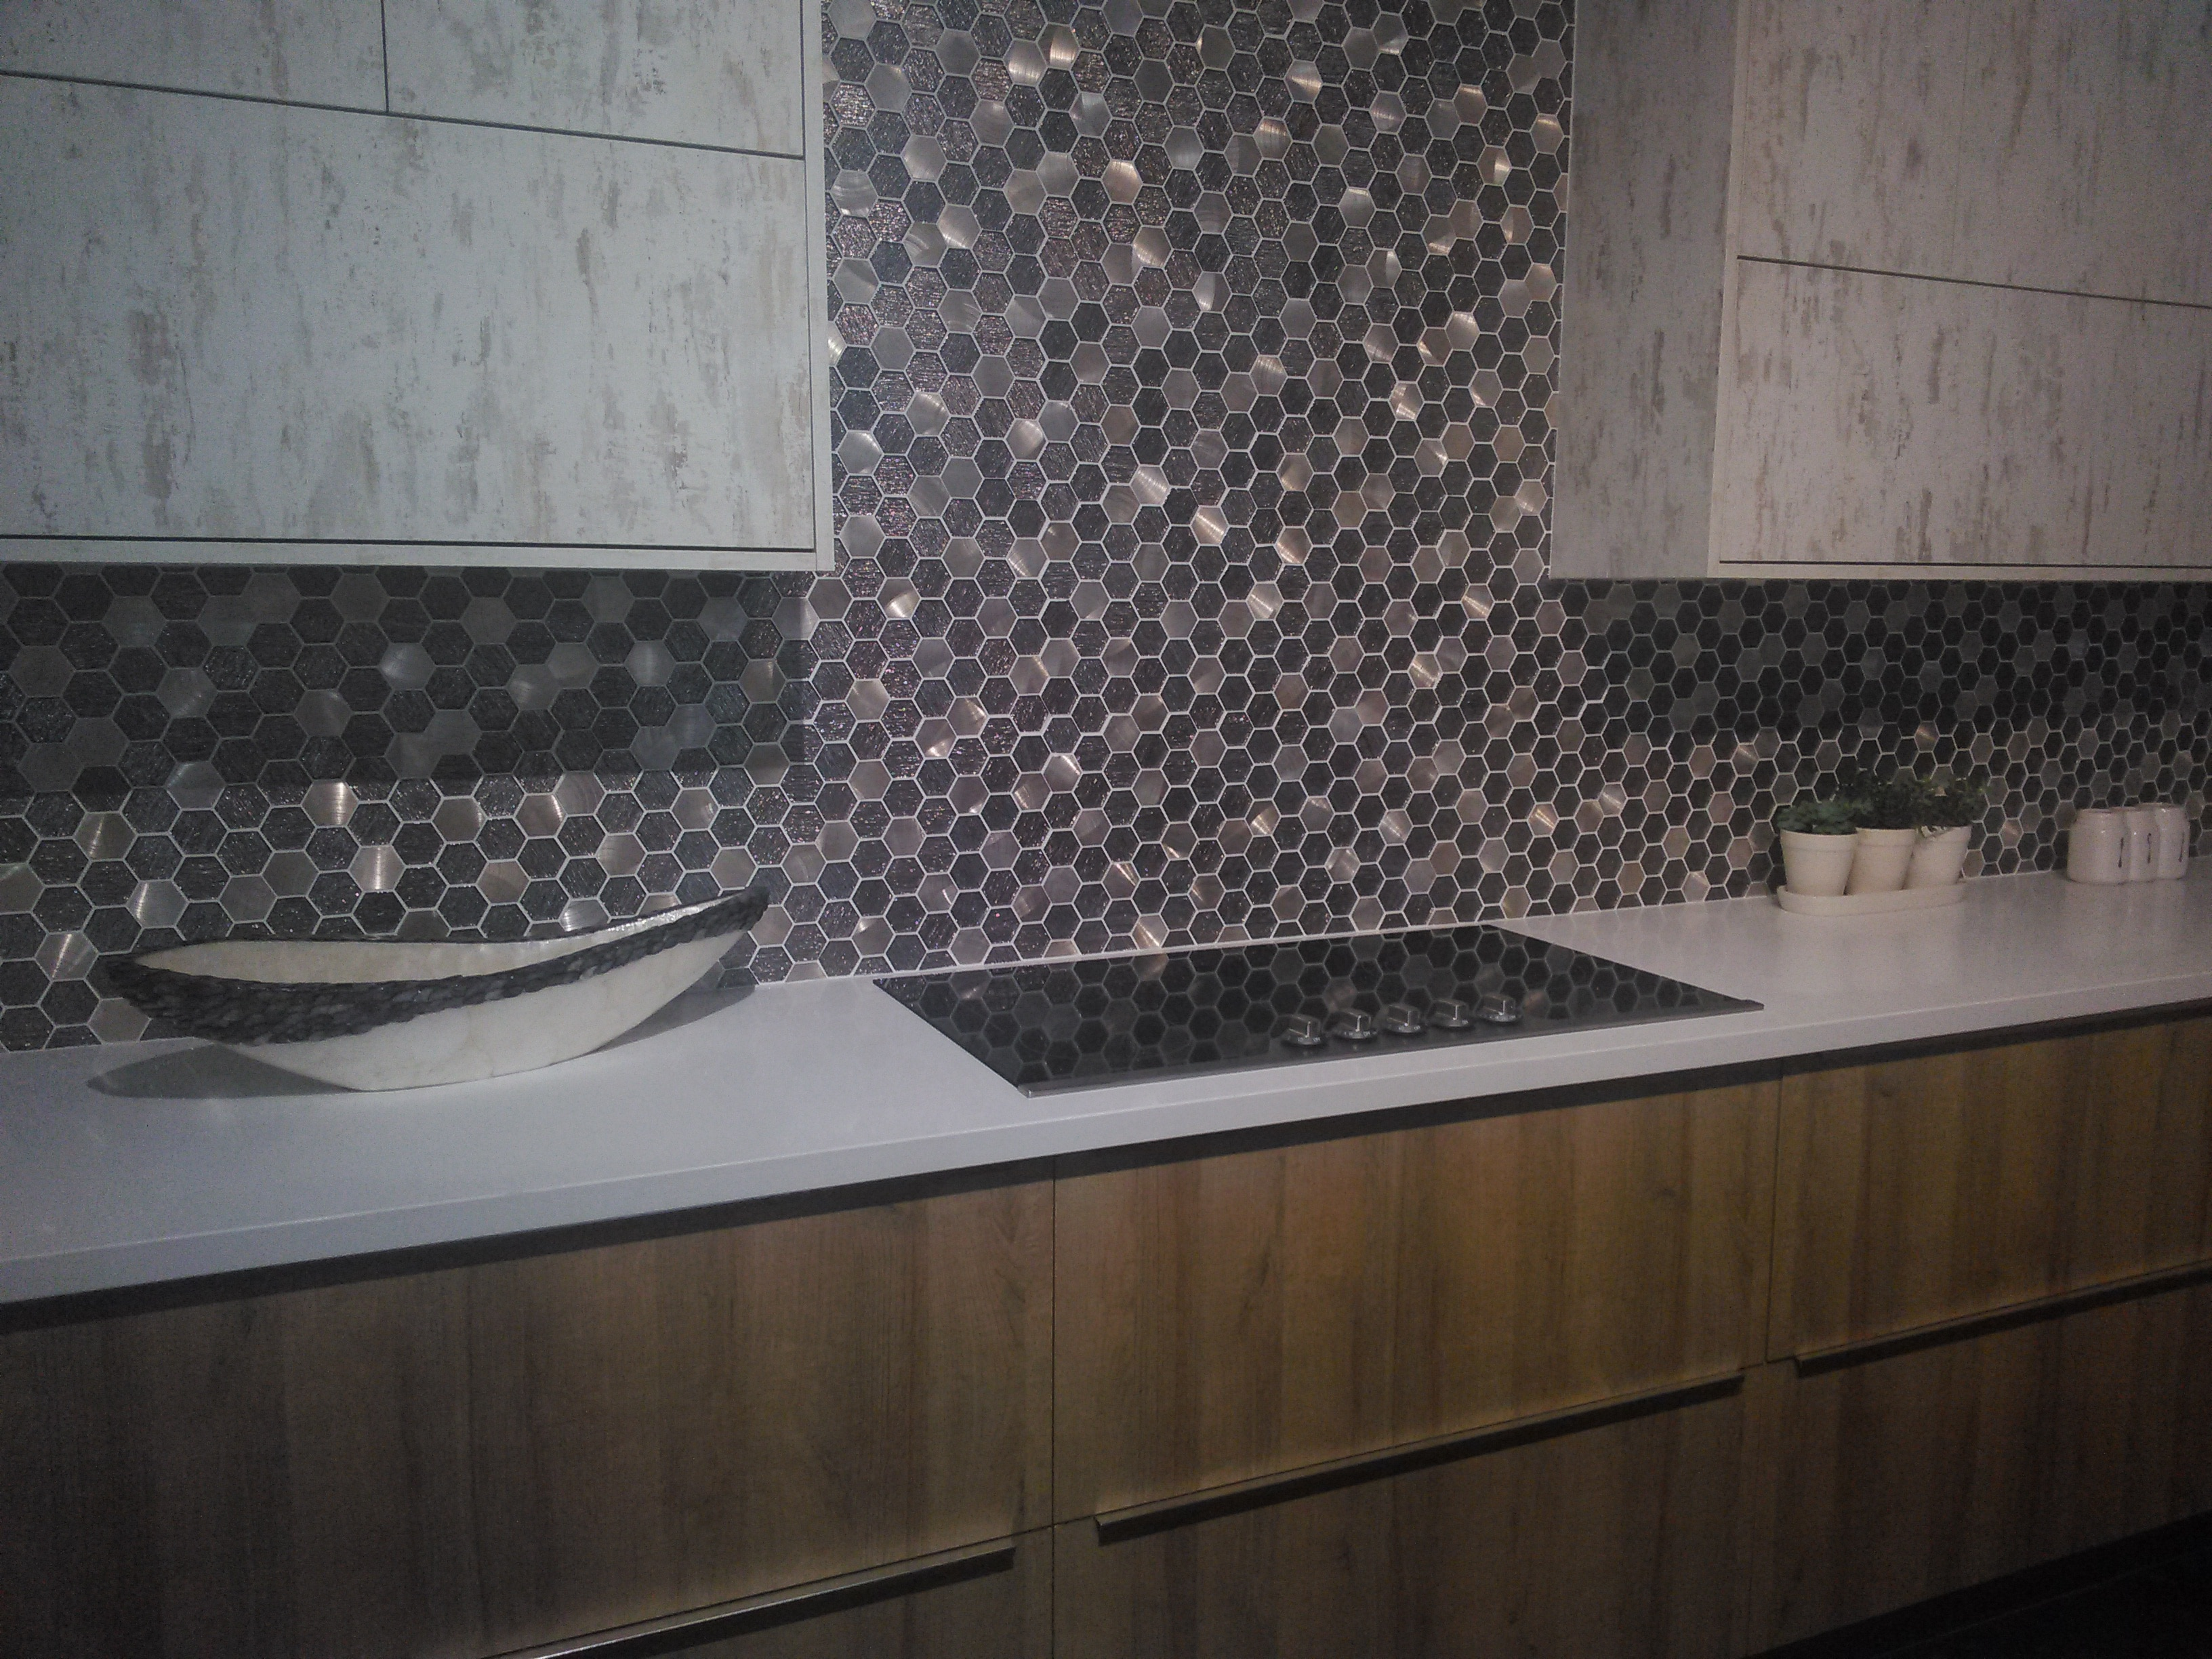 shiny-tile-kitchen-backsplash-european-cabinets